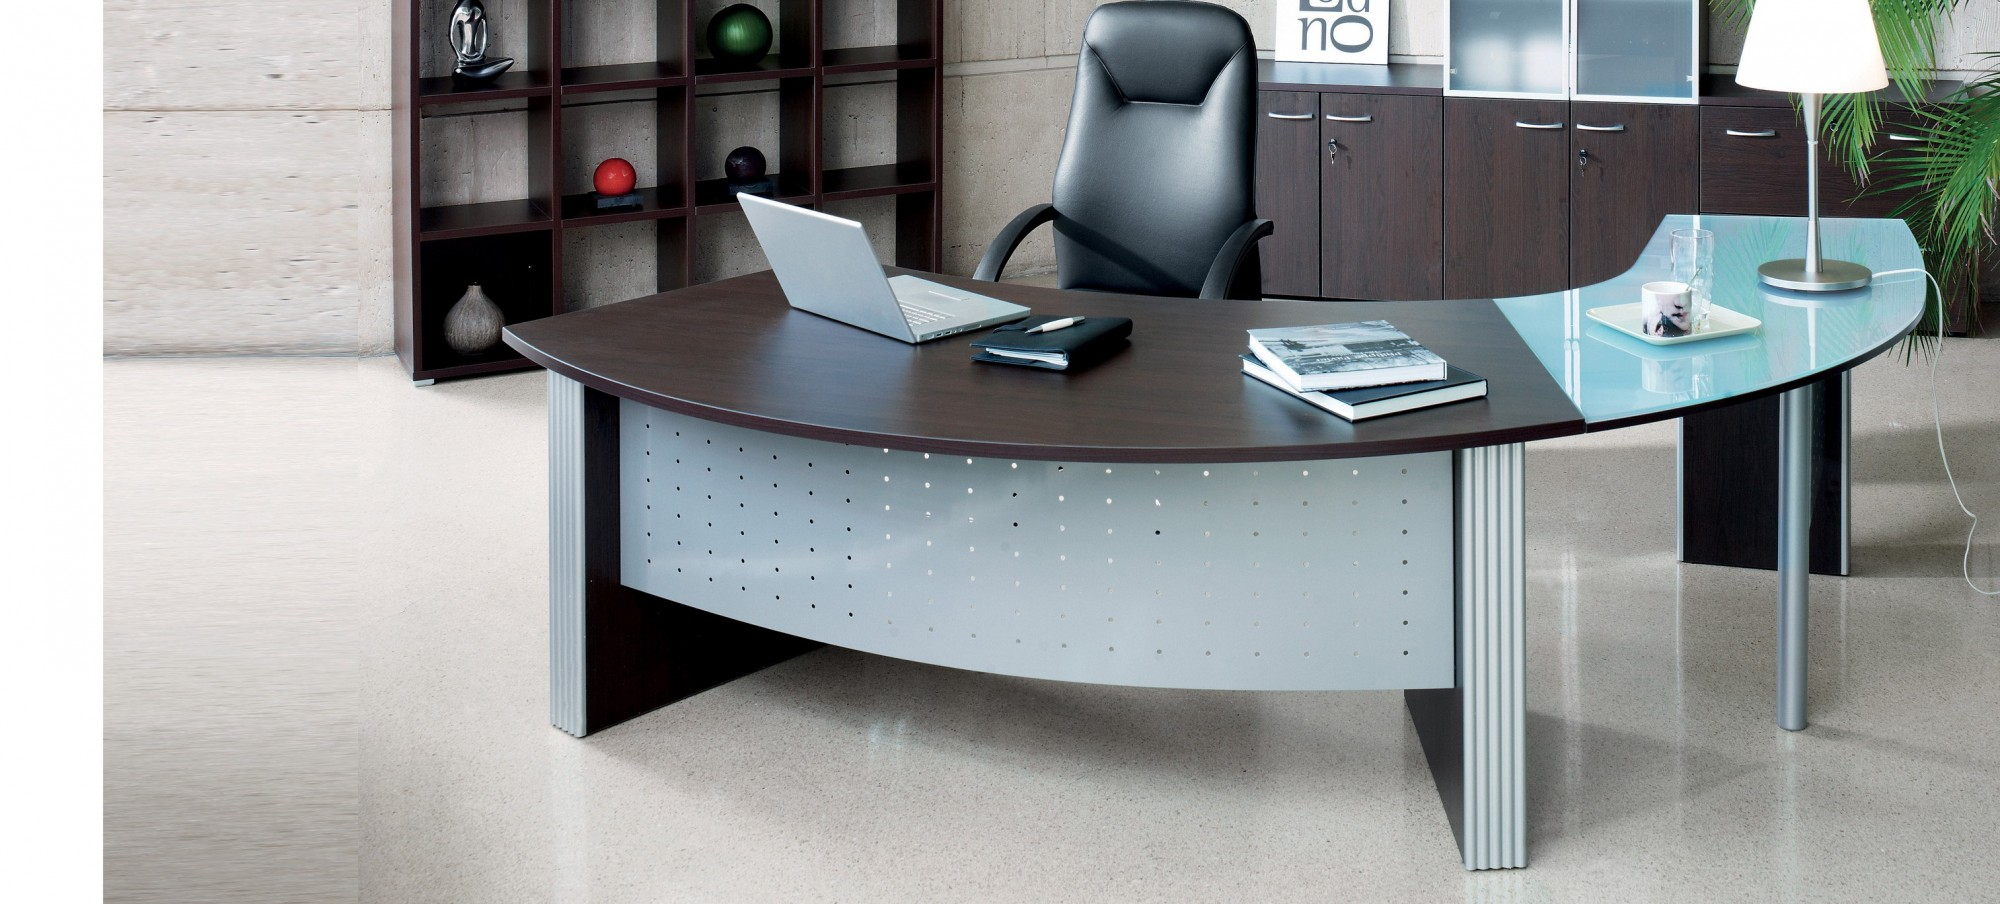 Curve Desk and Glass Curve Return - Direction Style - Desk with right